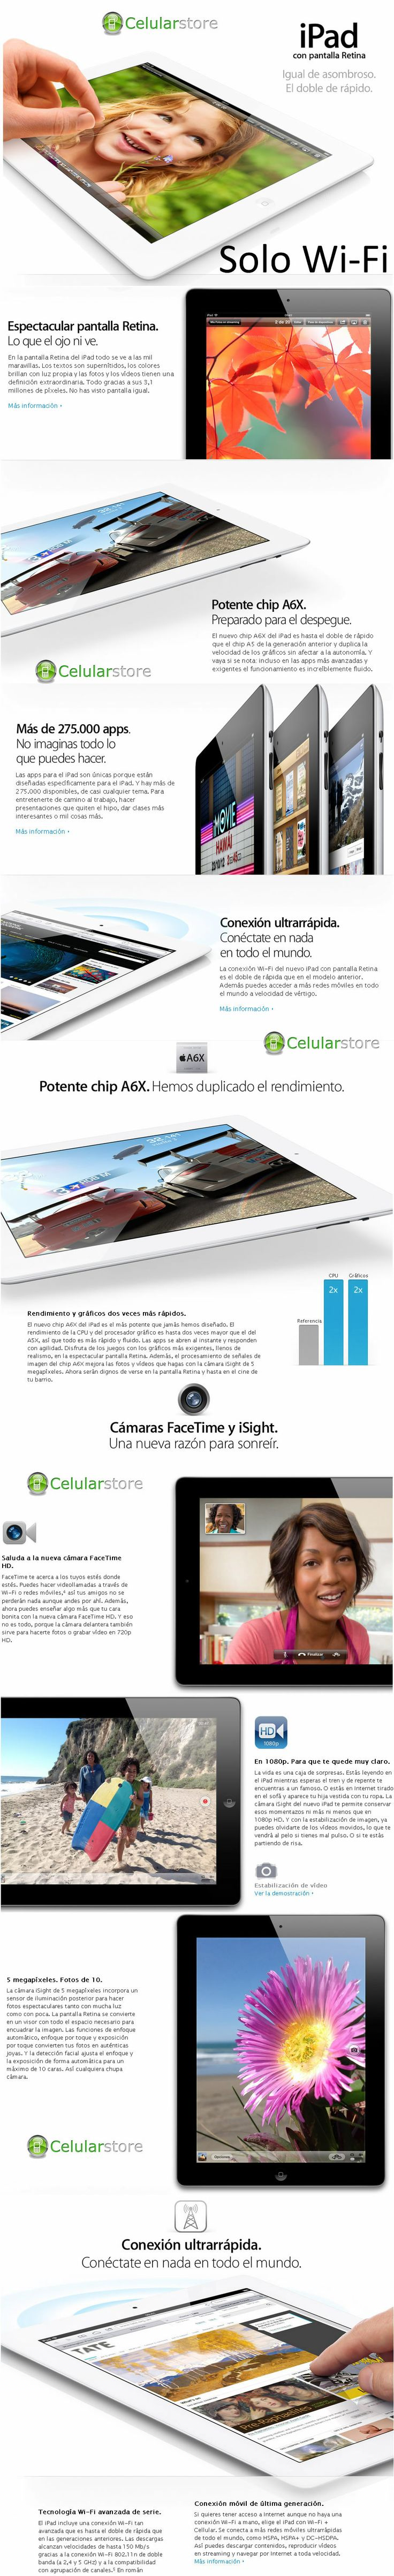 comprar apple ipad 4 / venta apple ipad 4 en argentina